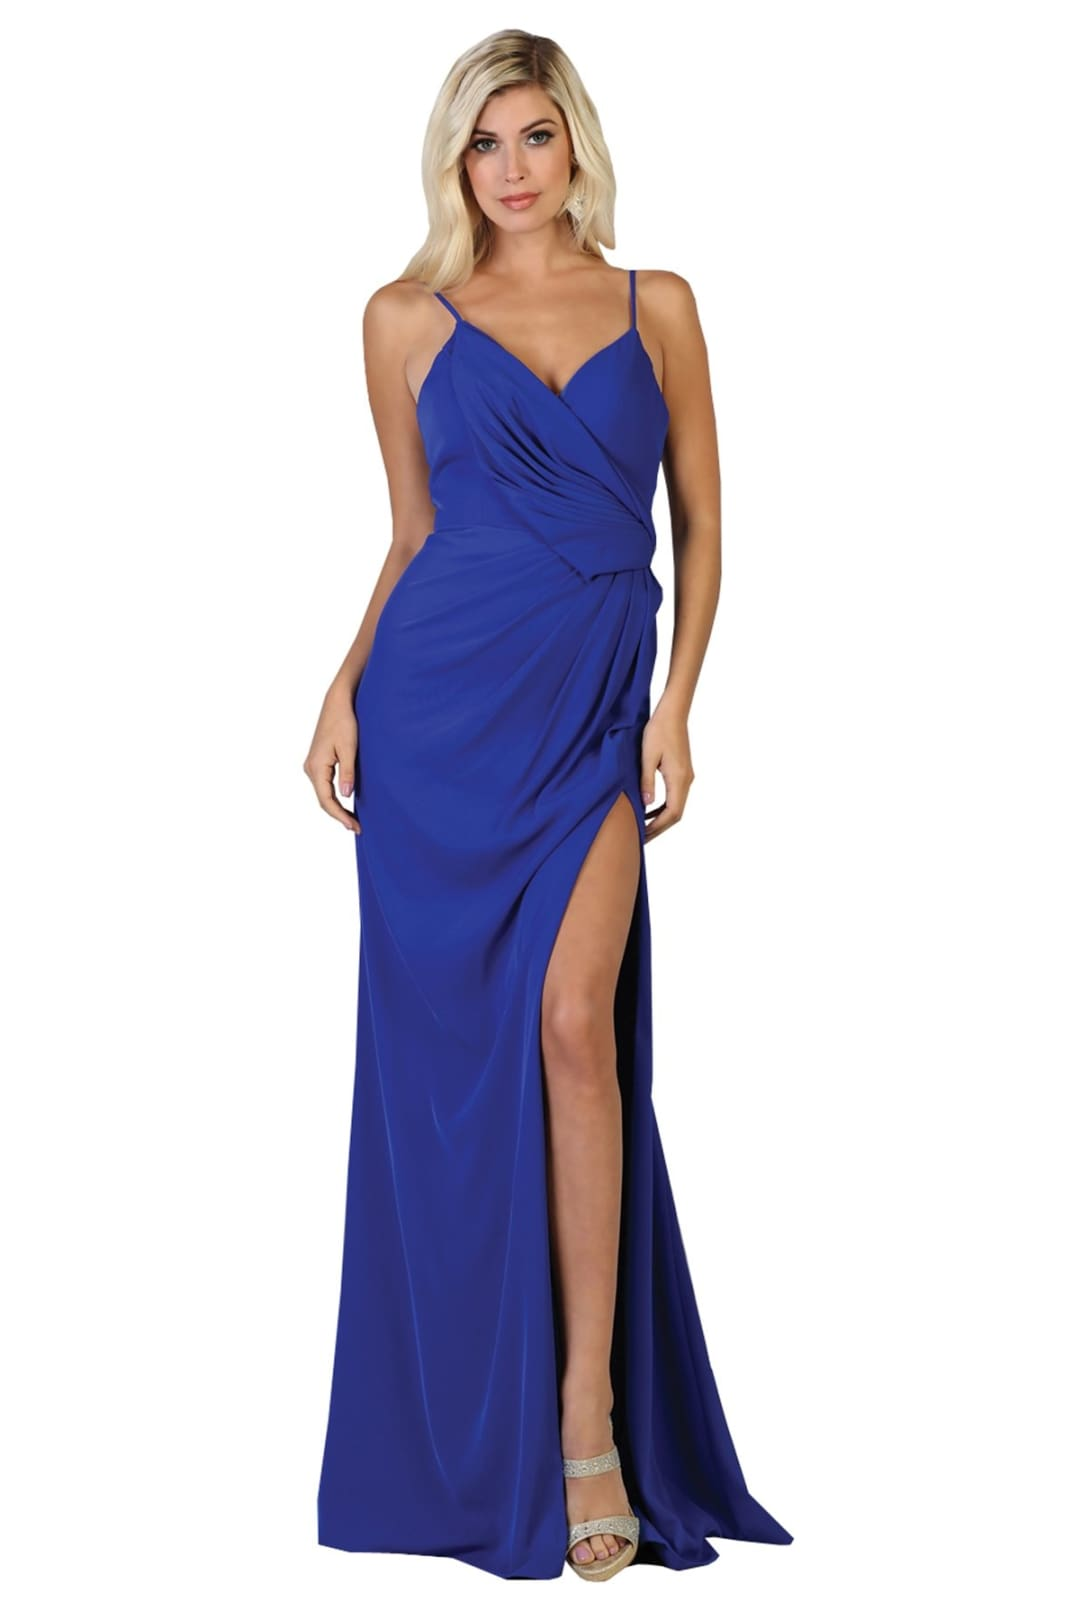 Classy Evening Gown - Royal / 6